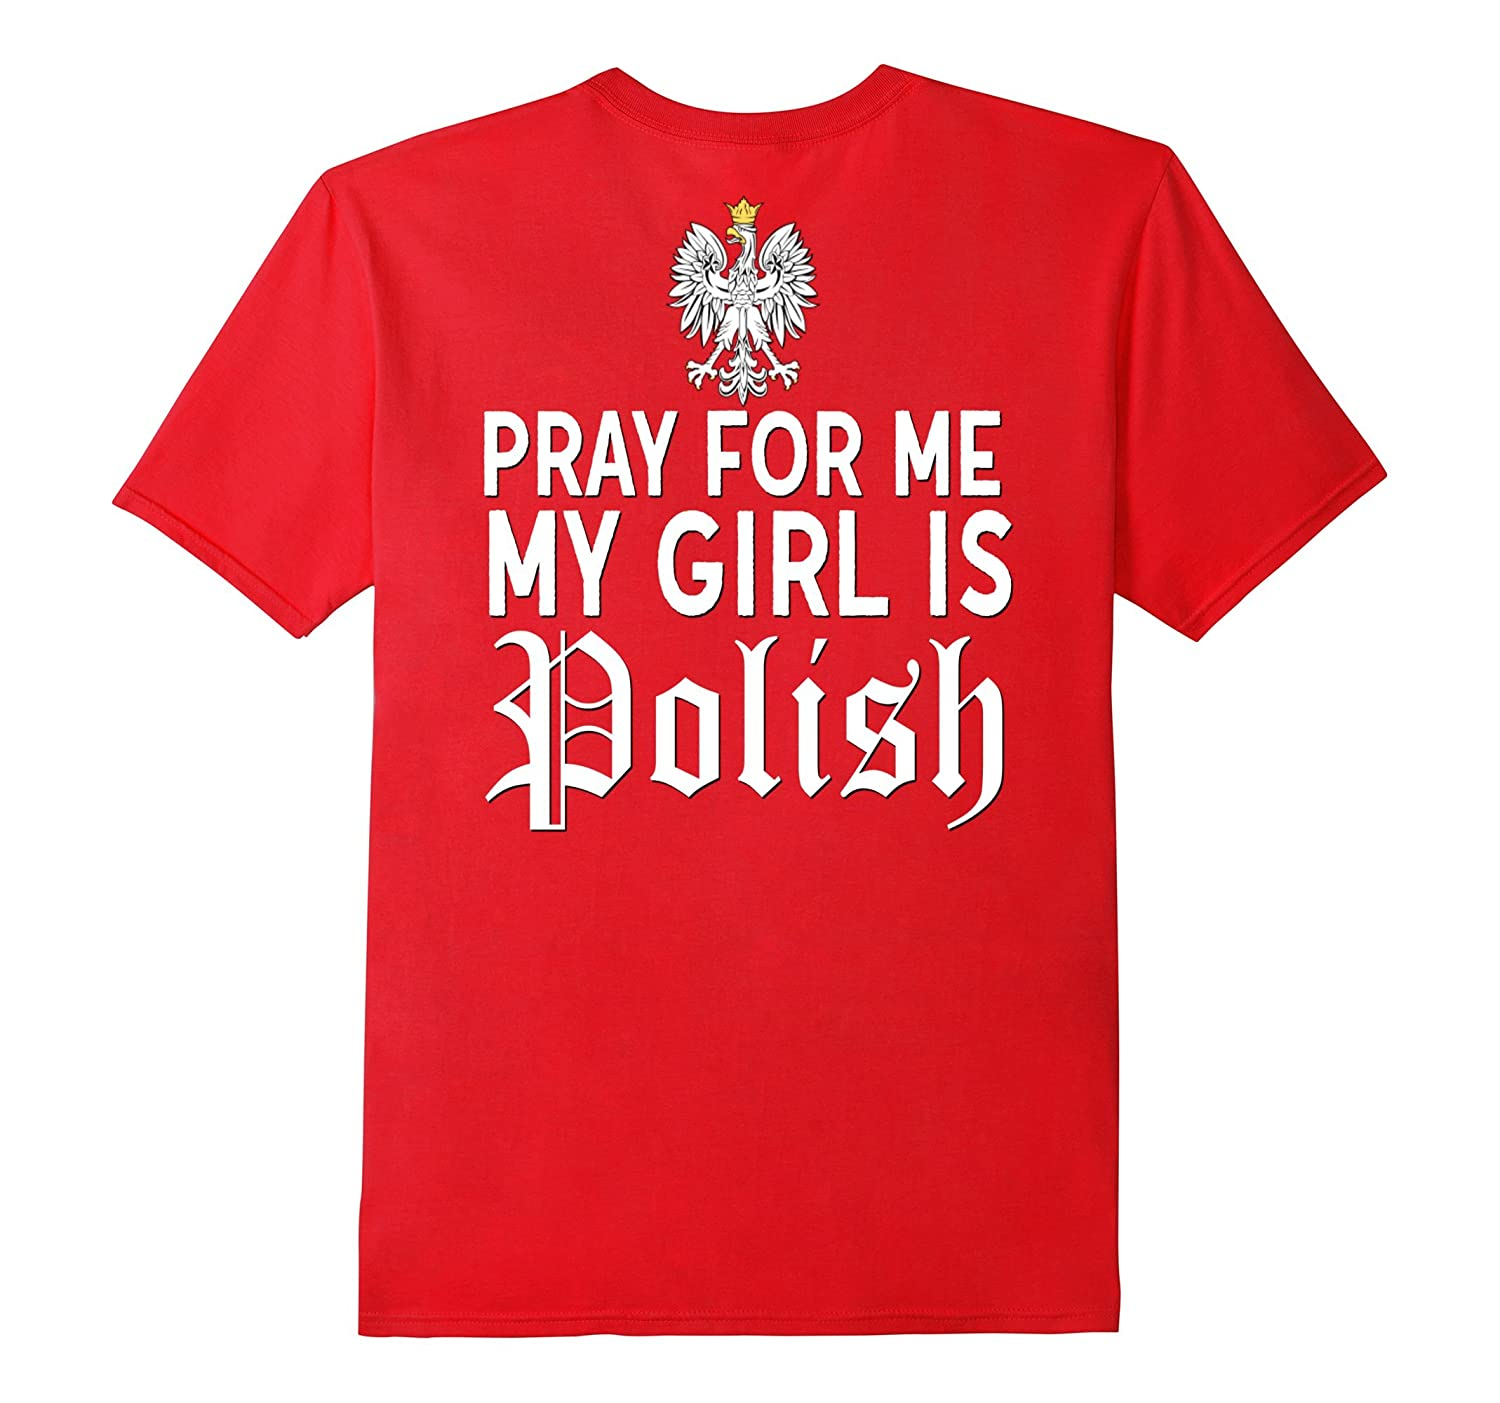 Funny Pray For Me My Girl Is Polish Shirt Girlfriend Dyngus-CD